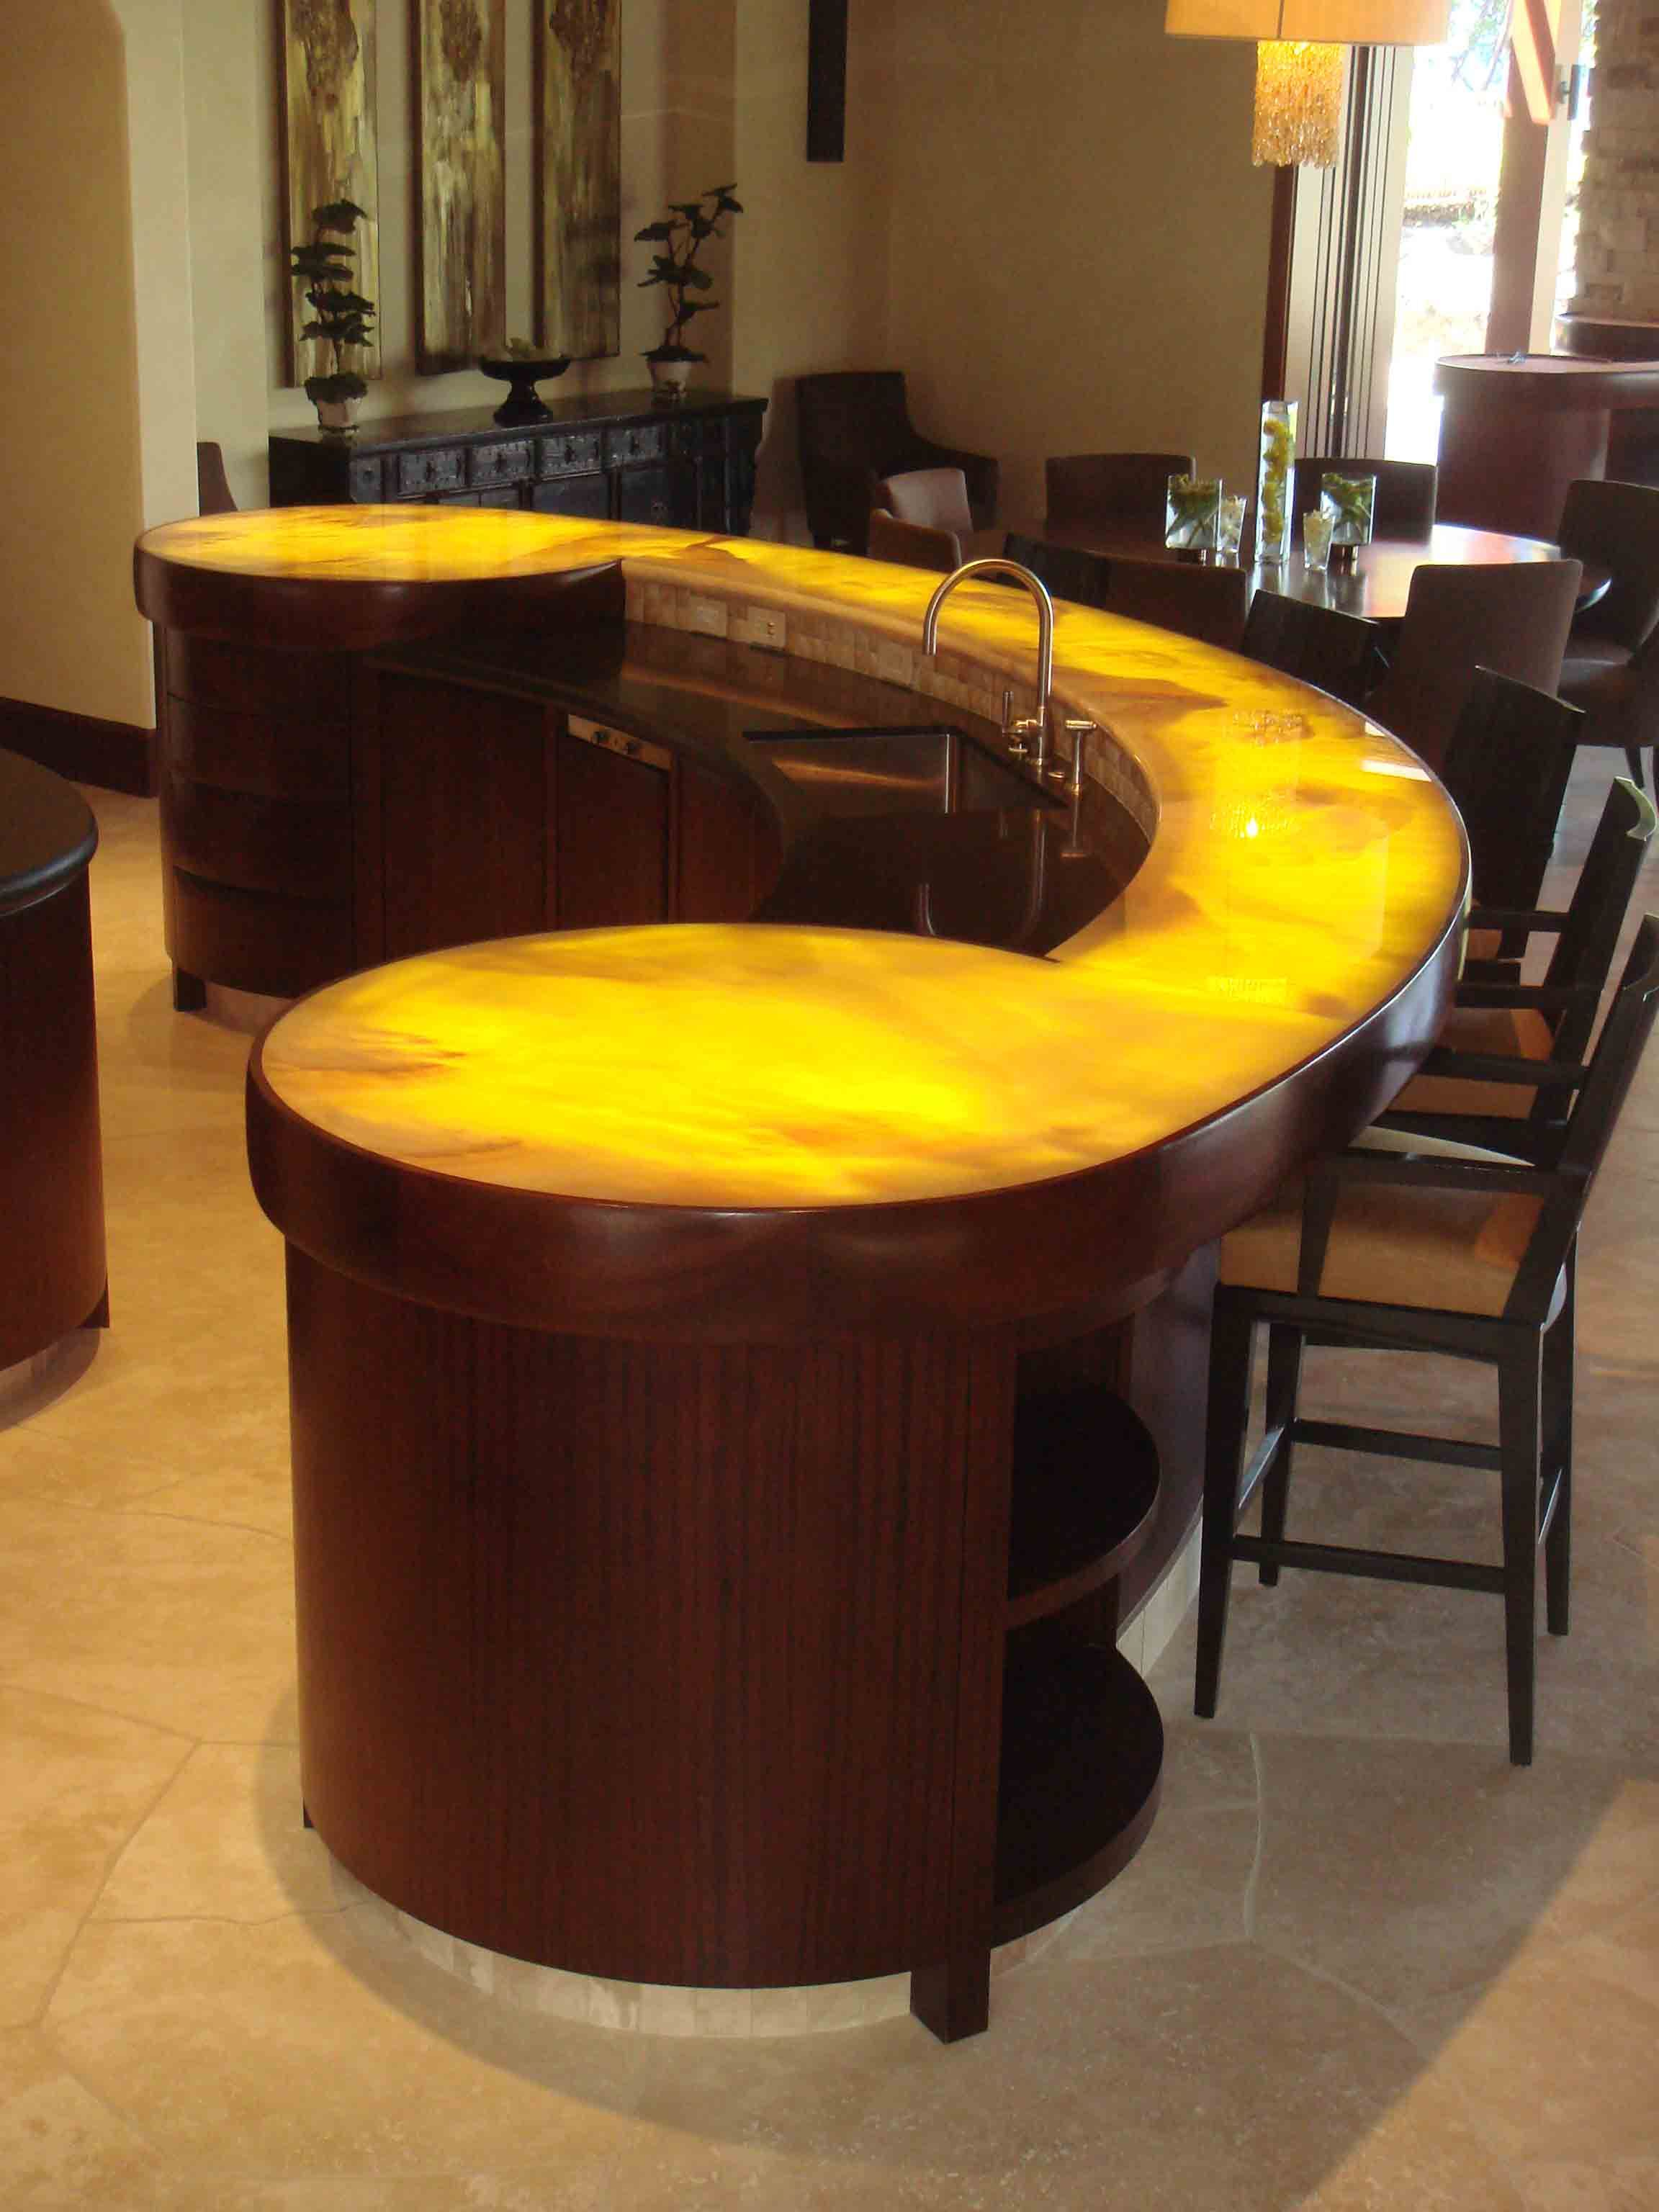 Fetching modern bar counter designs for home design with dark brown wood small bar table also - Home bar counter design photo ...